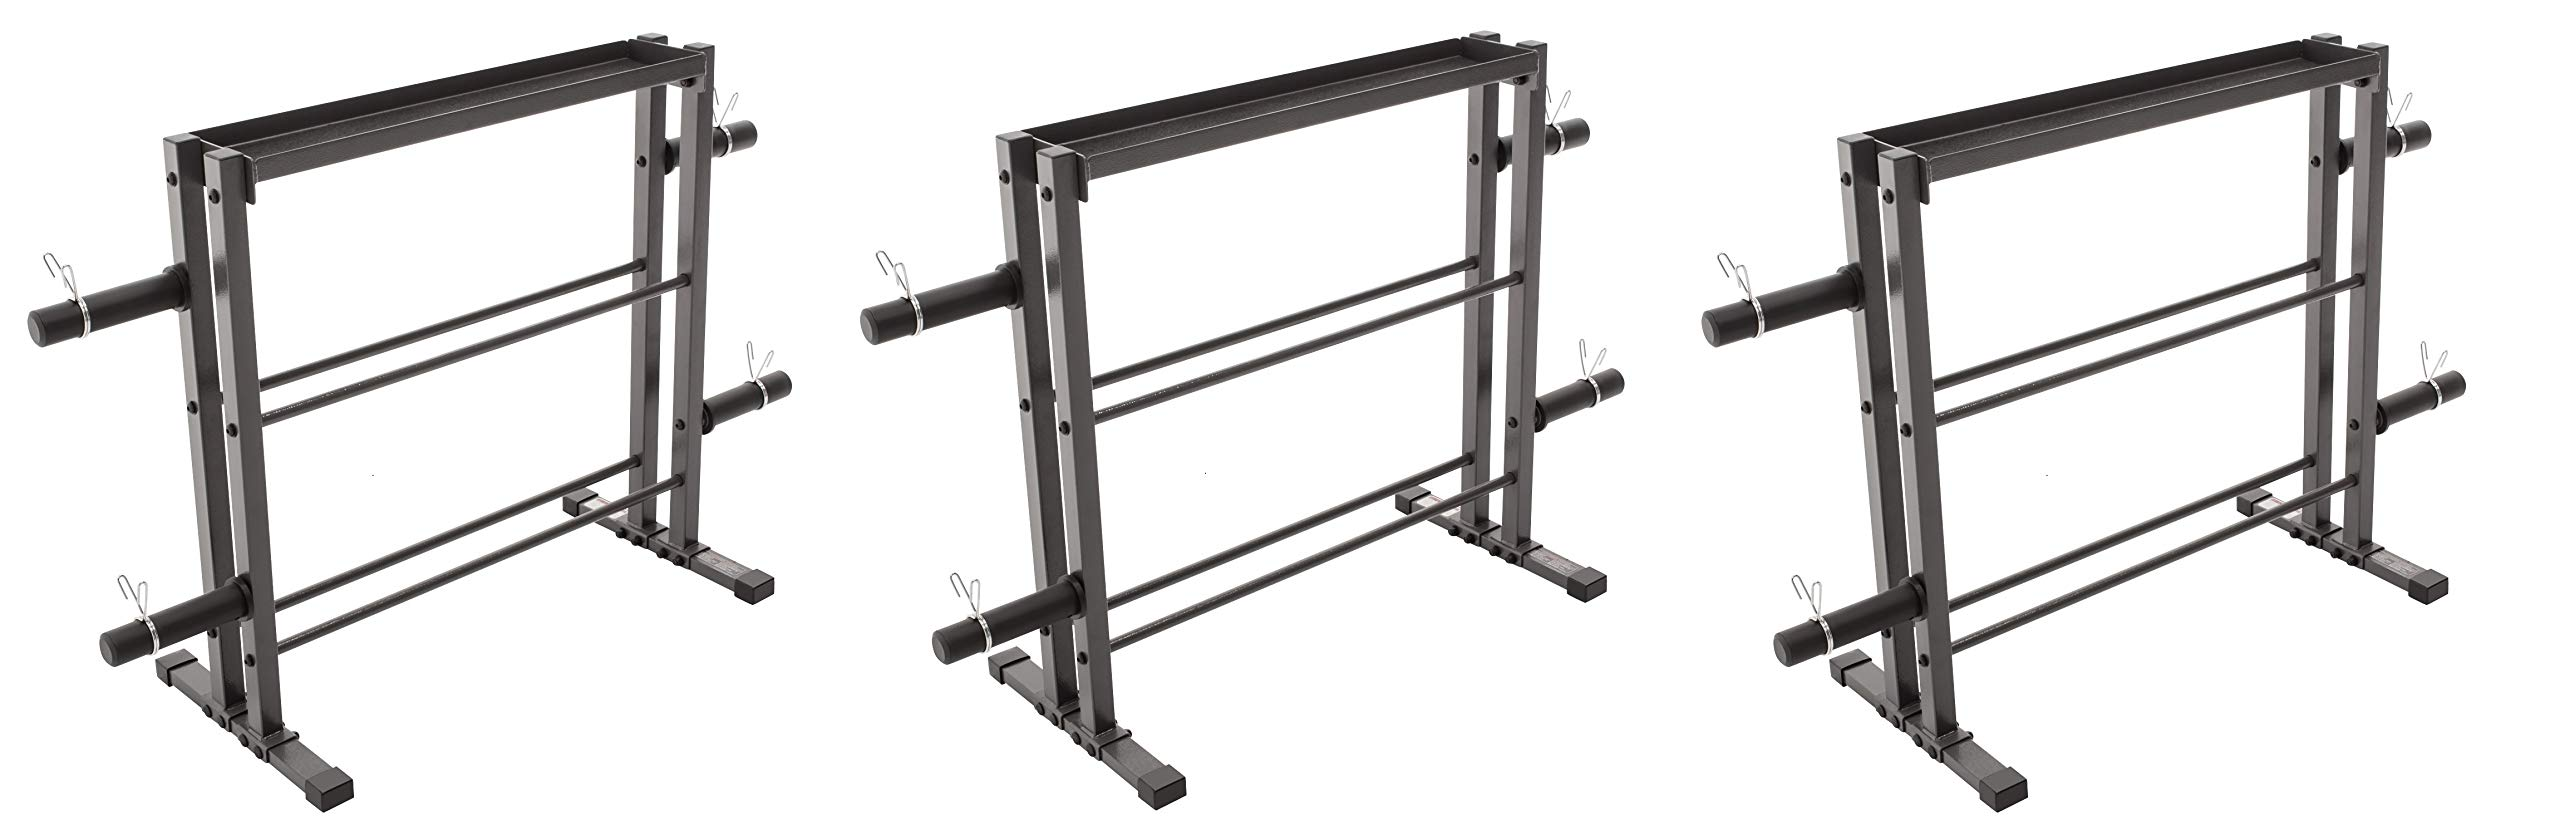 Marcy Combo Weights Storage Rack for Dumbbells, Kettlebells, and Weight Plates DBR-0117 (Pack of 3) by Marcy